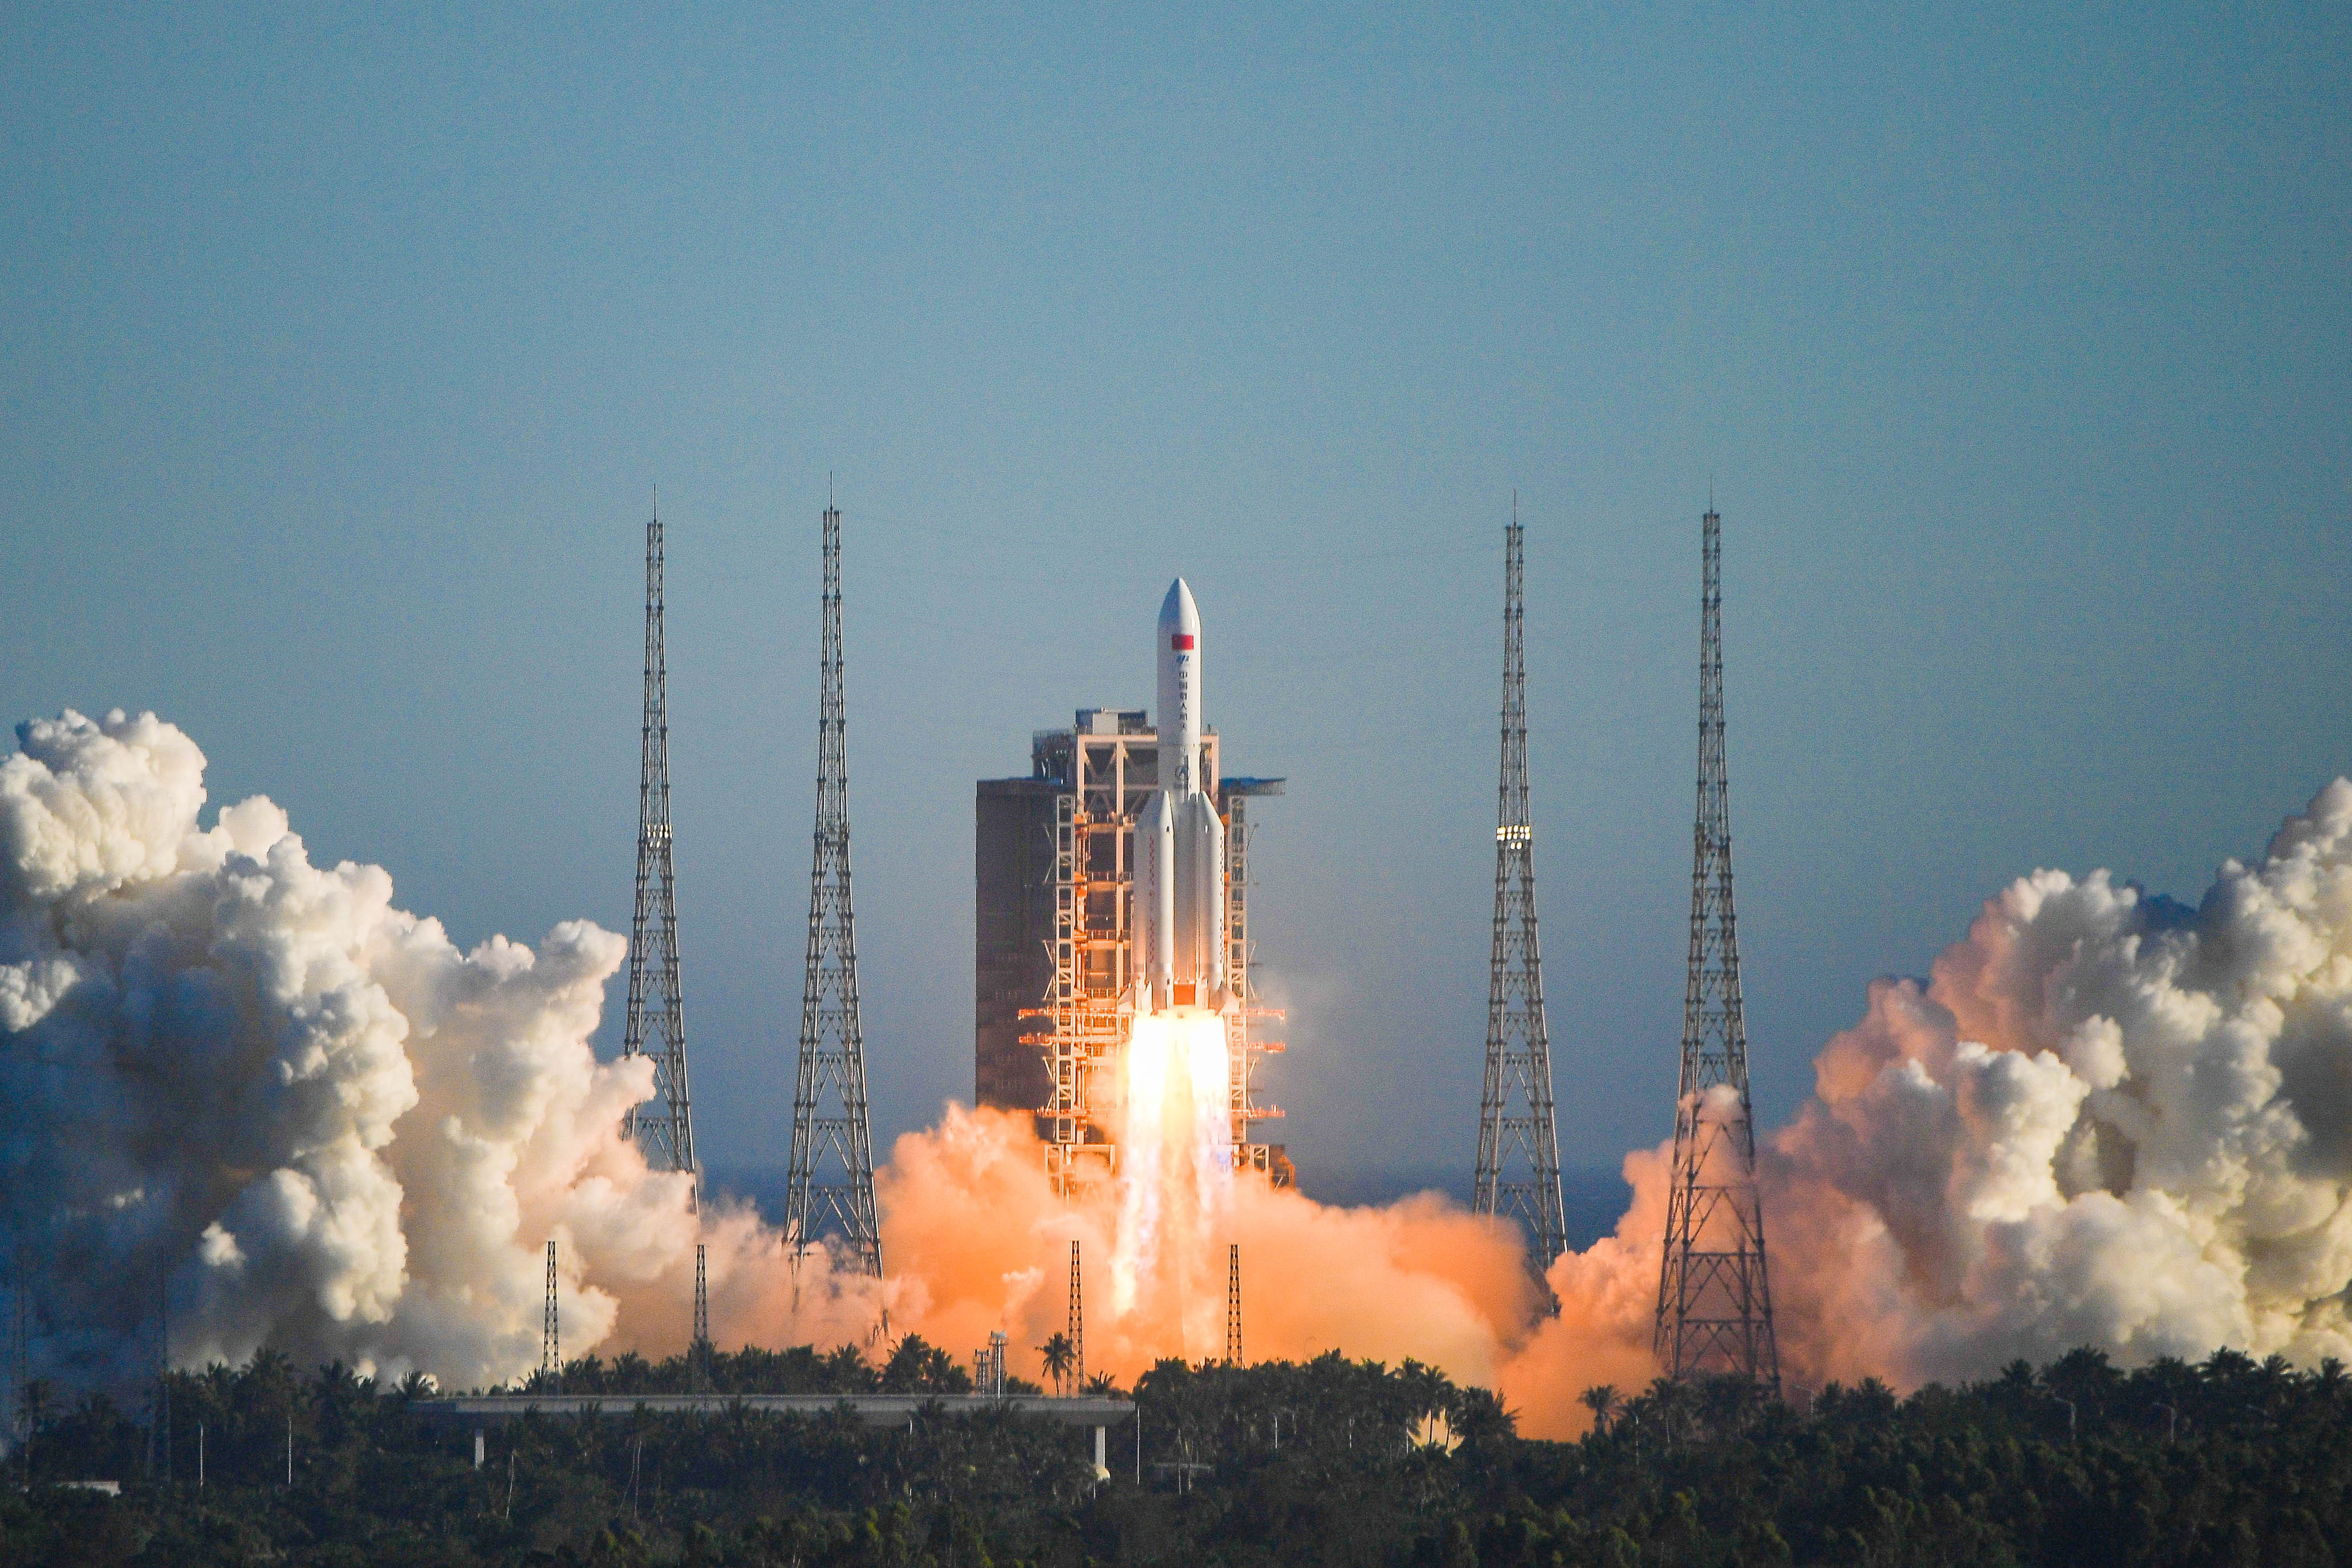 Launch of rocket which fell back to Earth